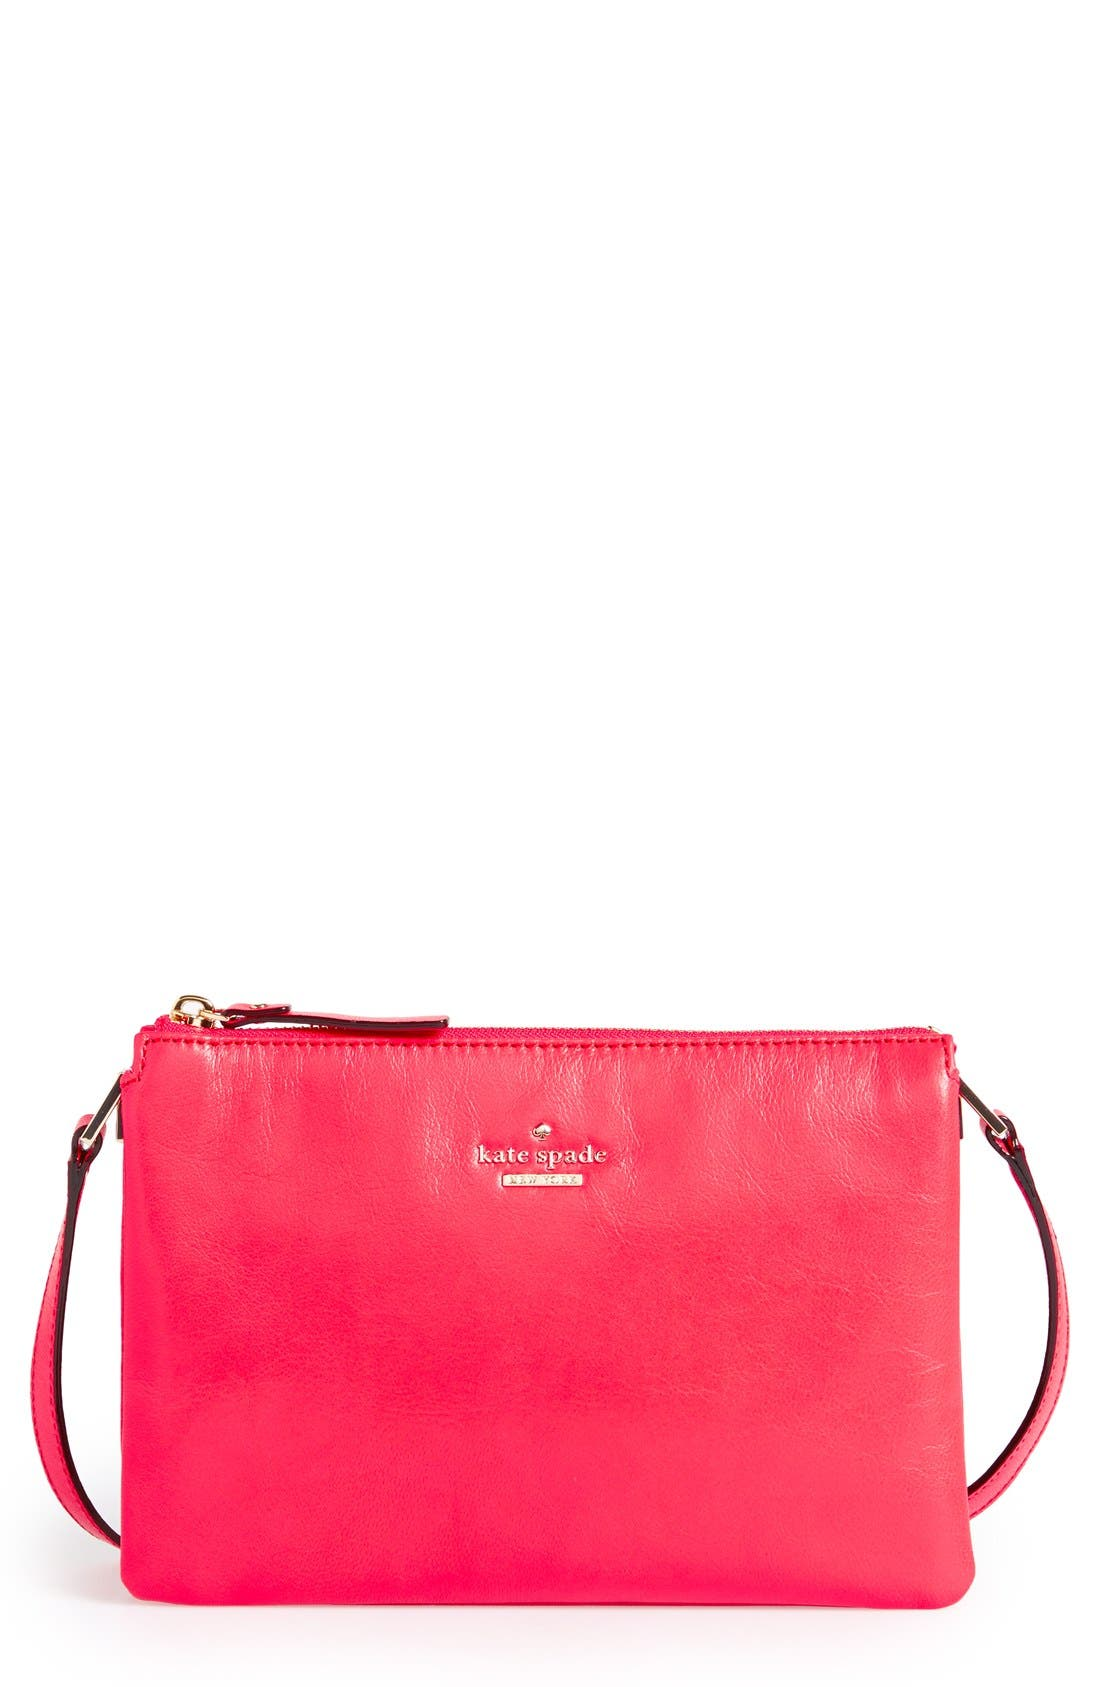 Alternate Image 1 Selected - kate spade new york 'ivy place - gabriella' leather crossbody bag